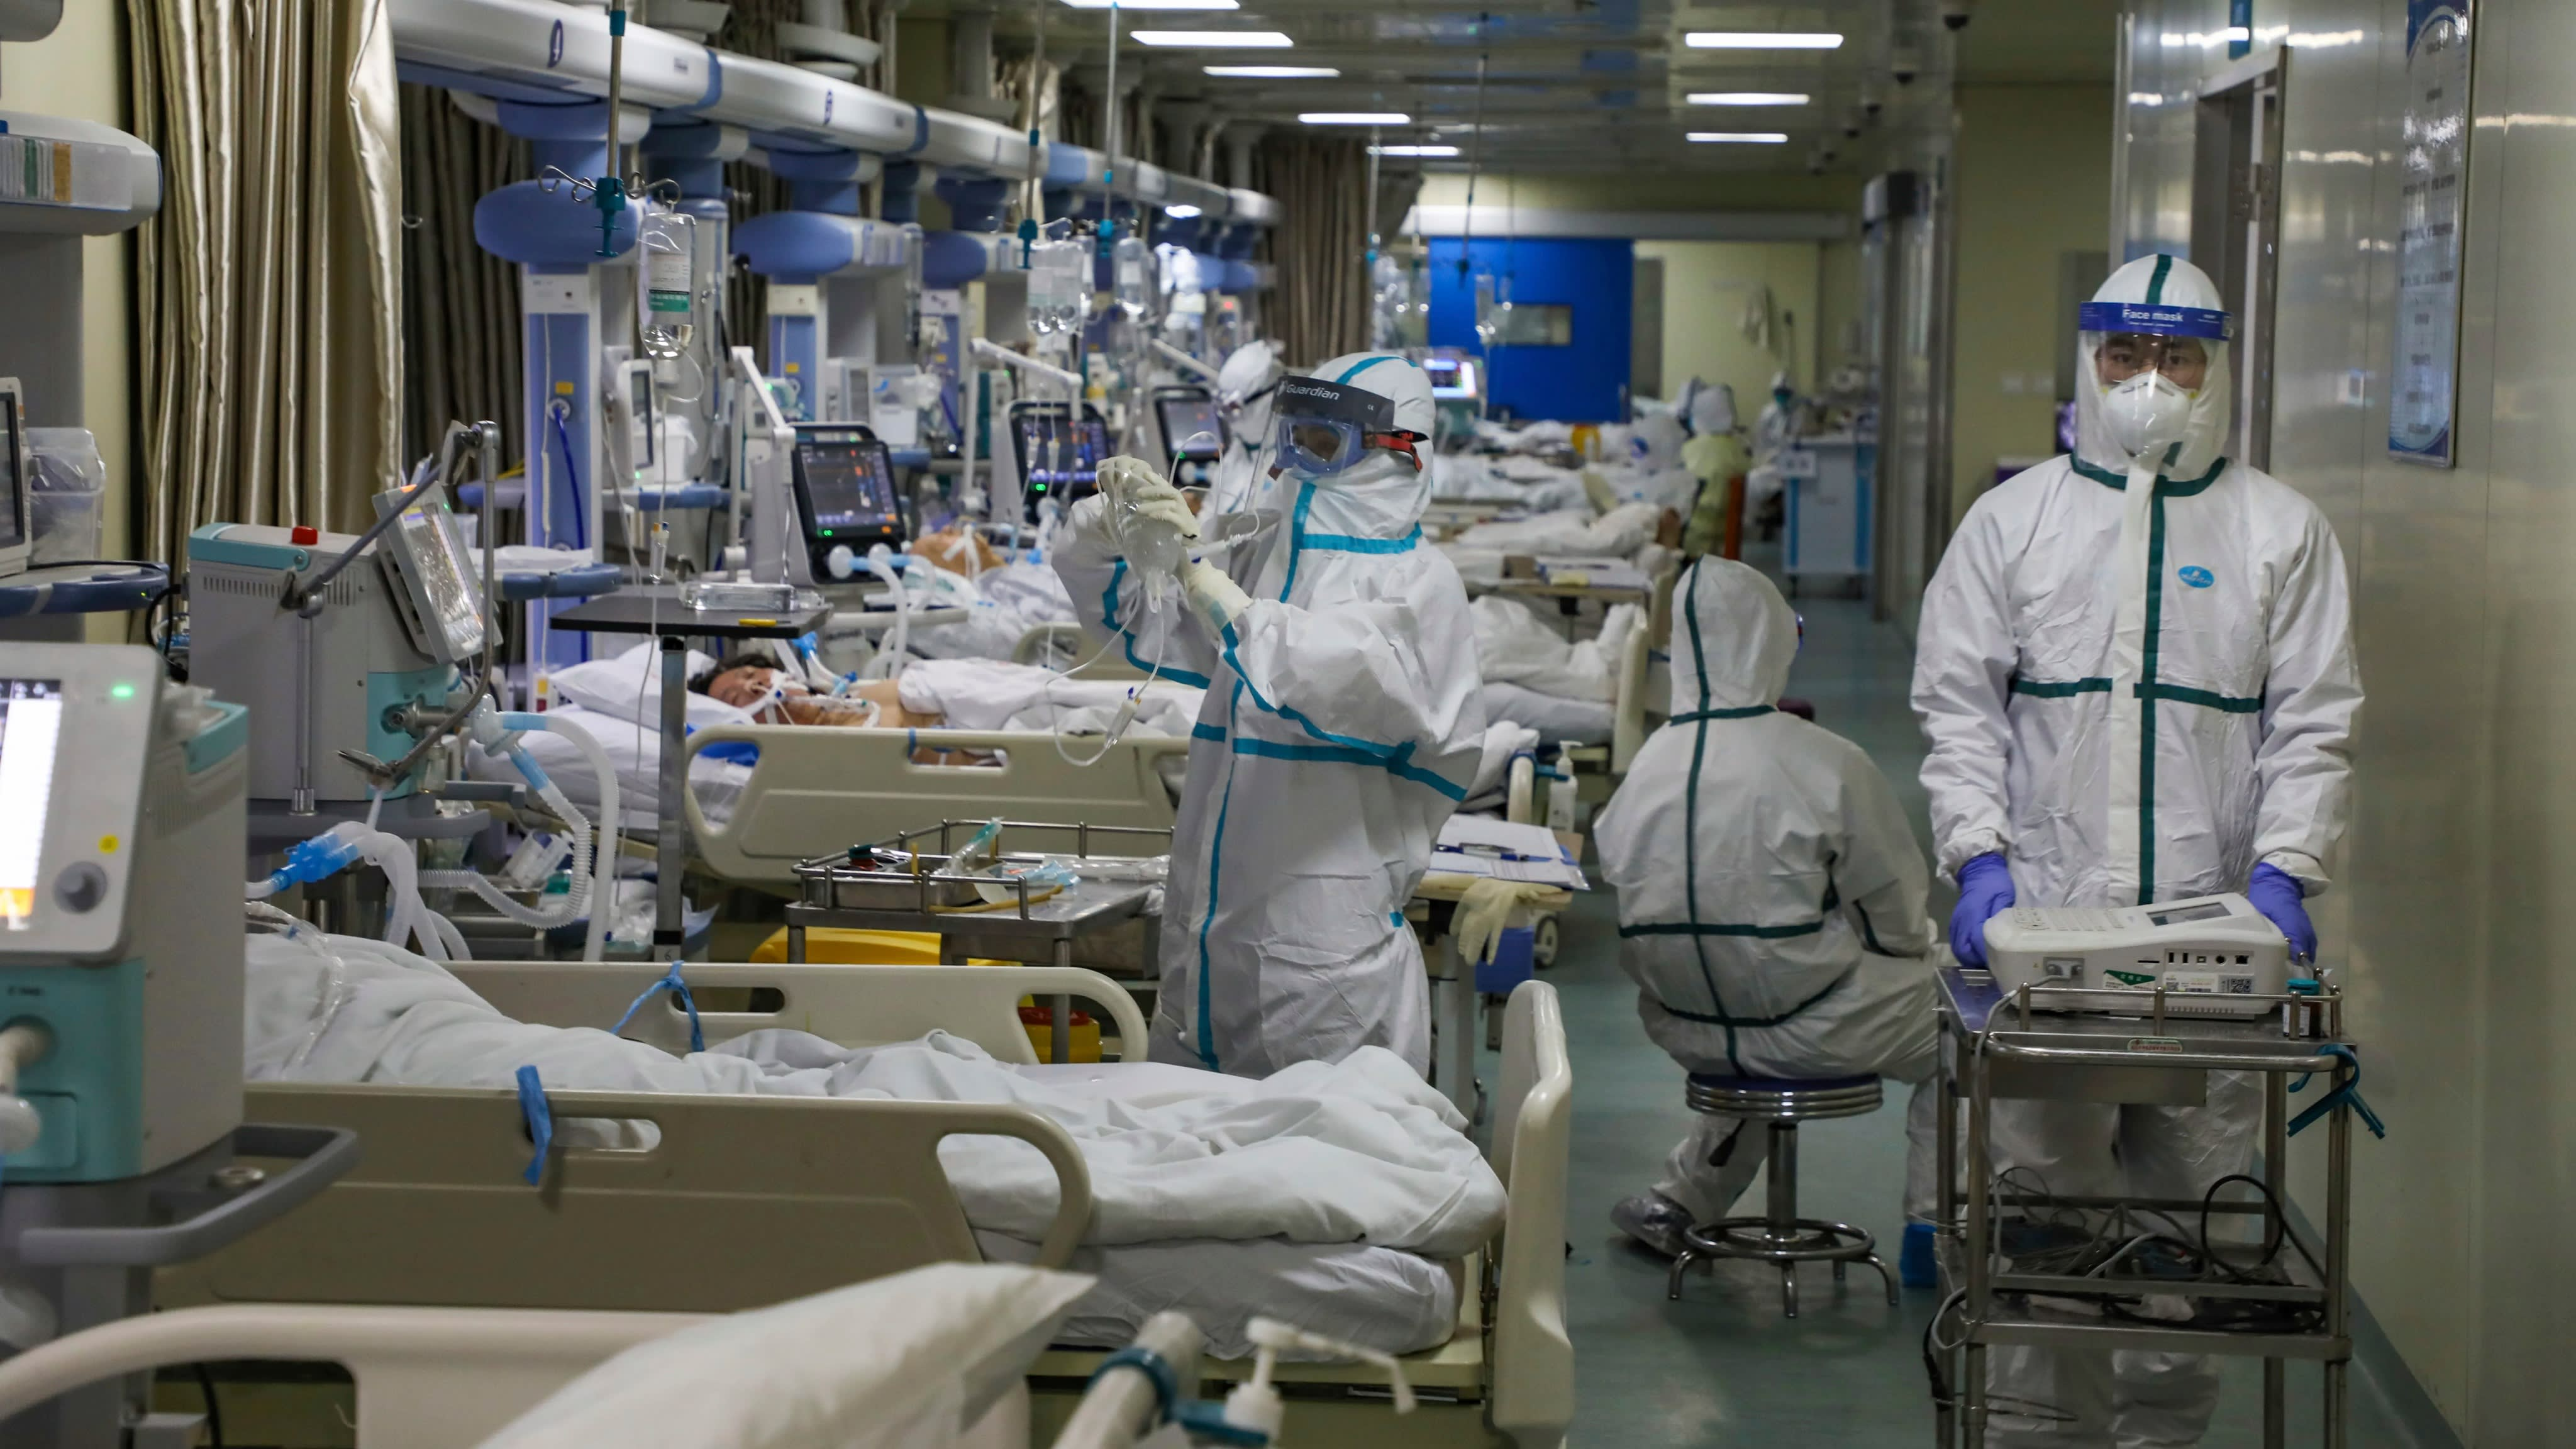 Medical staff work in the isolated intensive care unit in a hospital in Wuhan, China on 6 February.